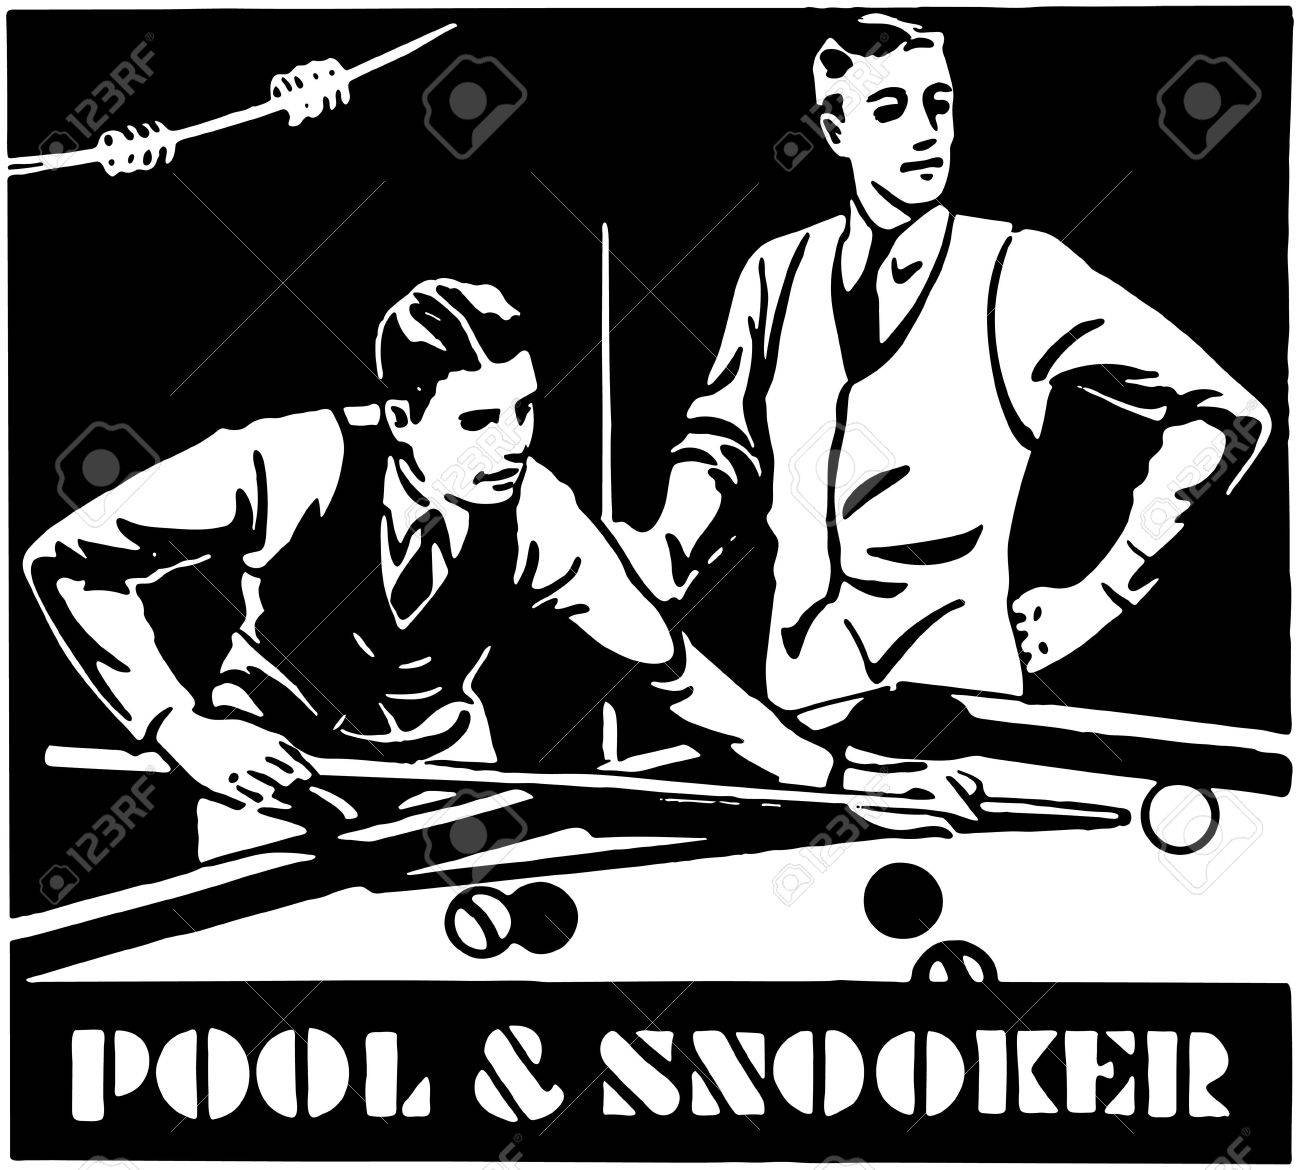 Billard et de snooker Banque d'images - 28343670